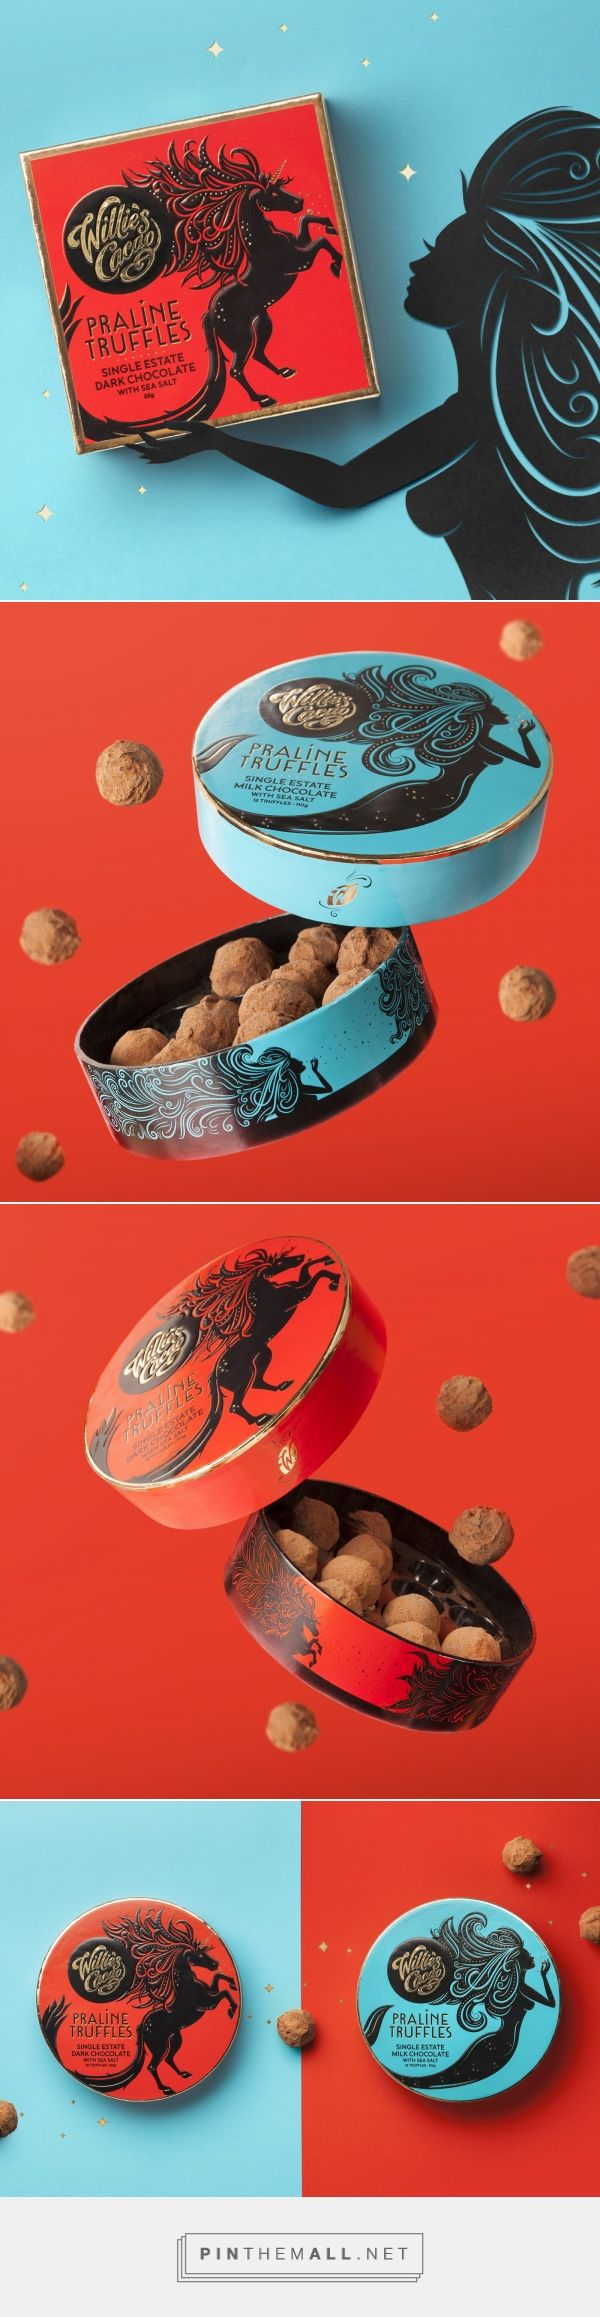 Willie's Cacao Truffles - Packaging of the World - Creative Package Design Gallery - http://www.packagingoftheworld.com/2018/01/willies-cacao-truffles.html